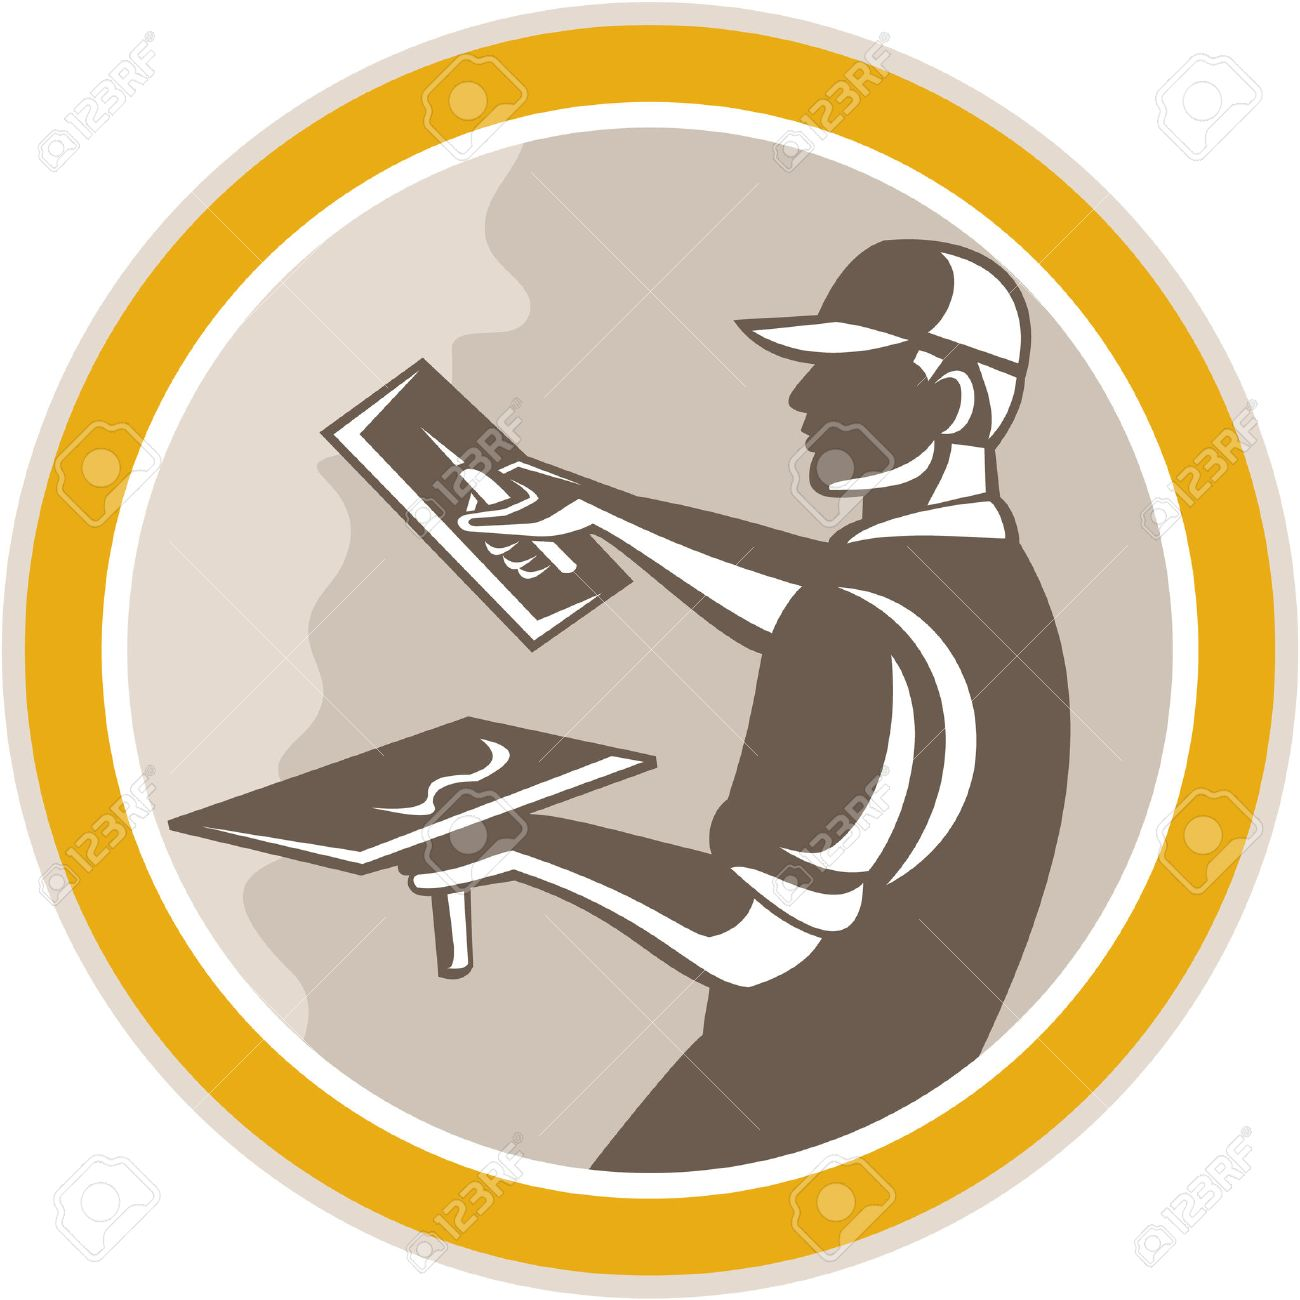 Illustration of a plasterer masonry tradesman construction worker with trowel done in retro woodcut style set inside circle on isolated background, - 27236038